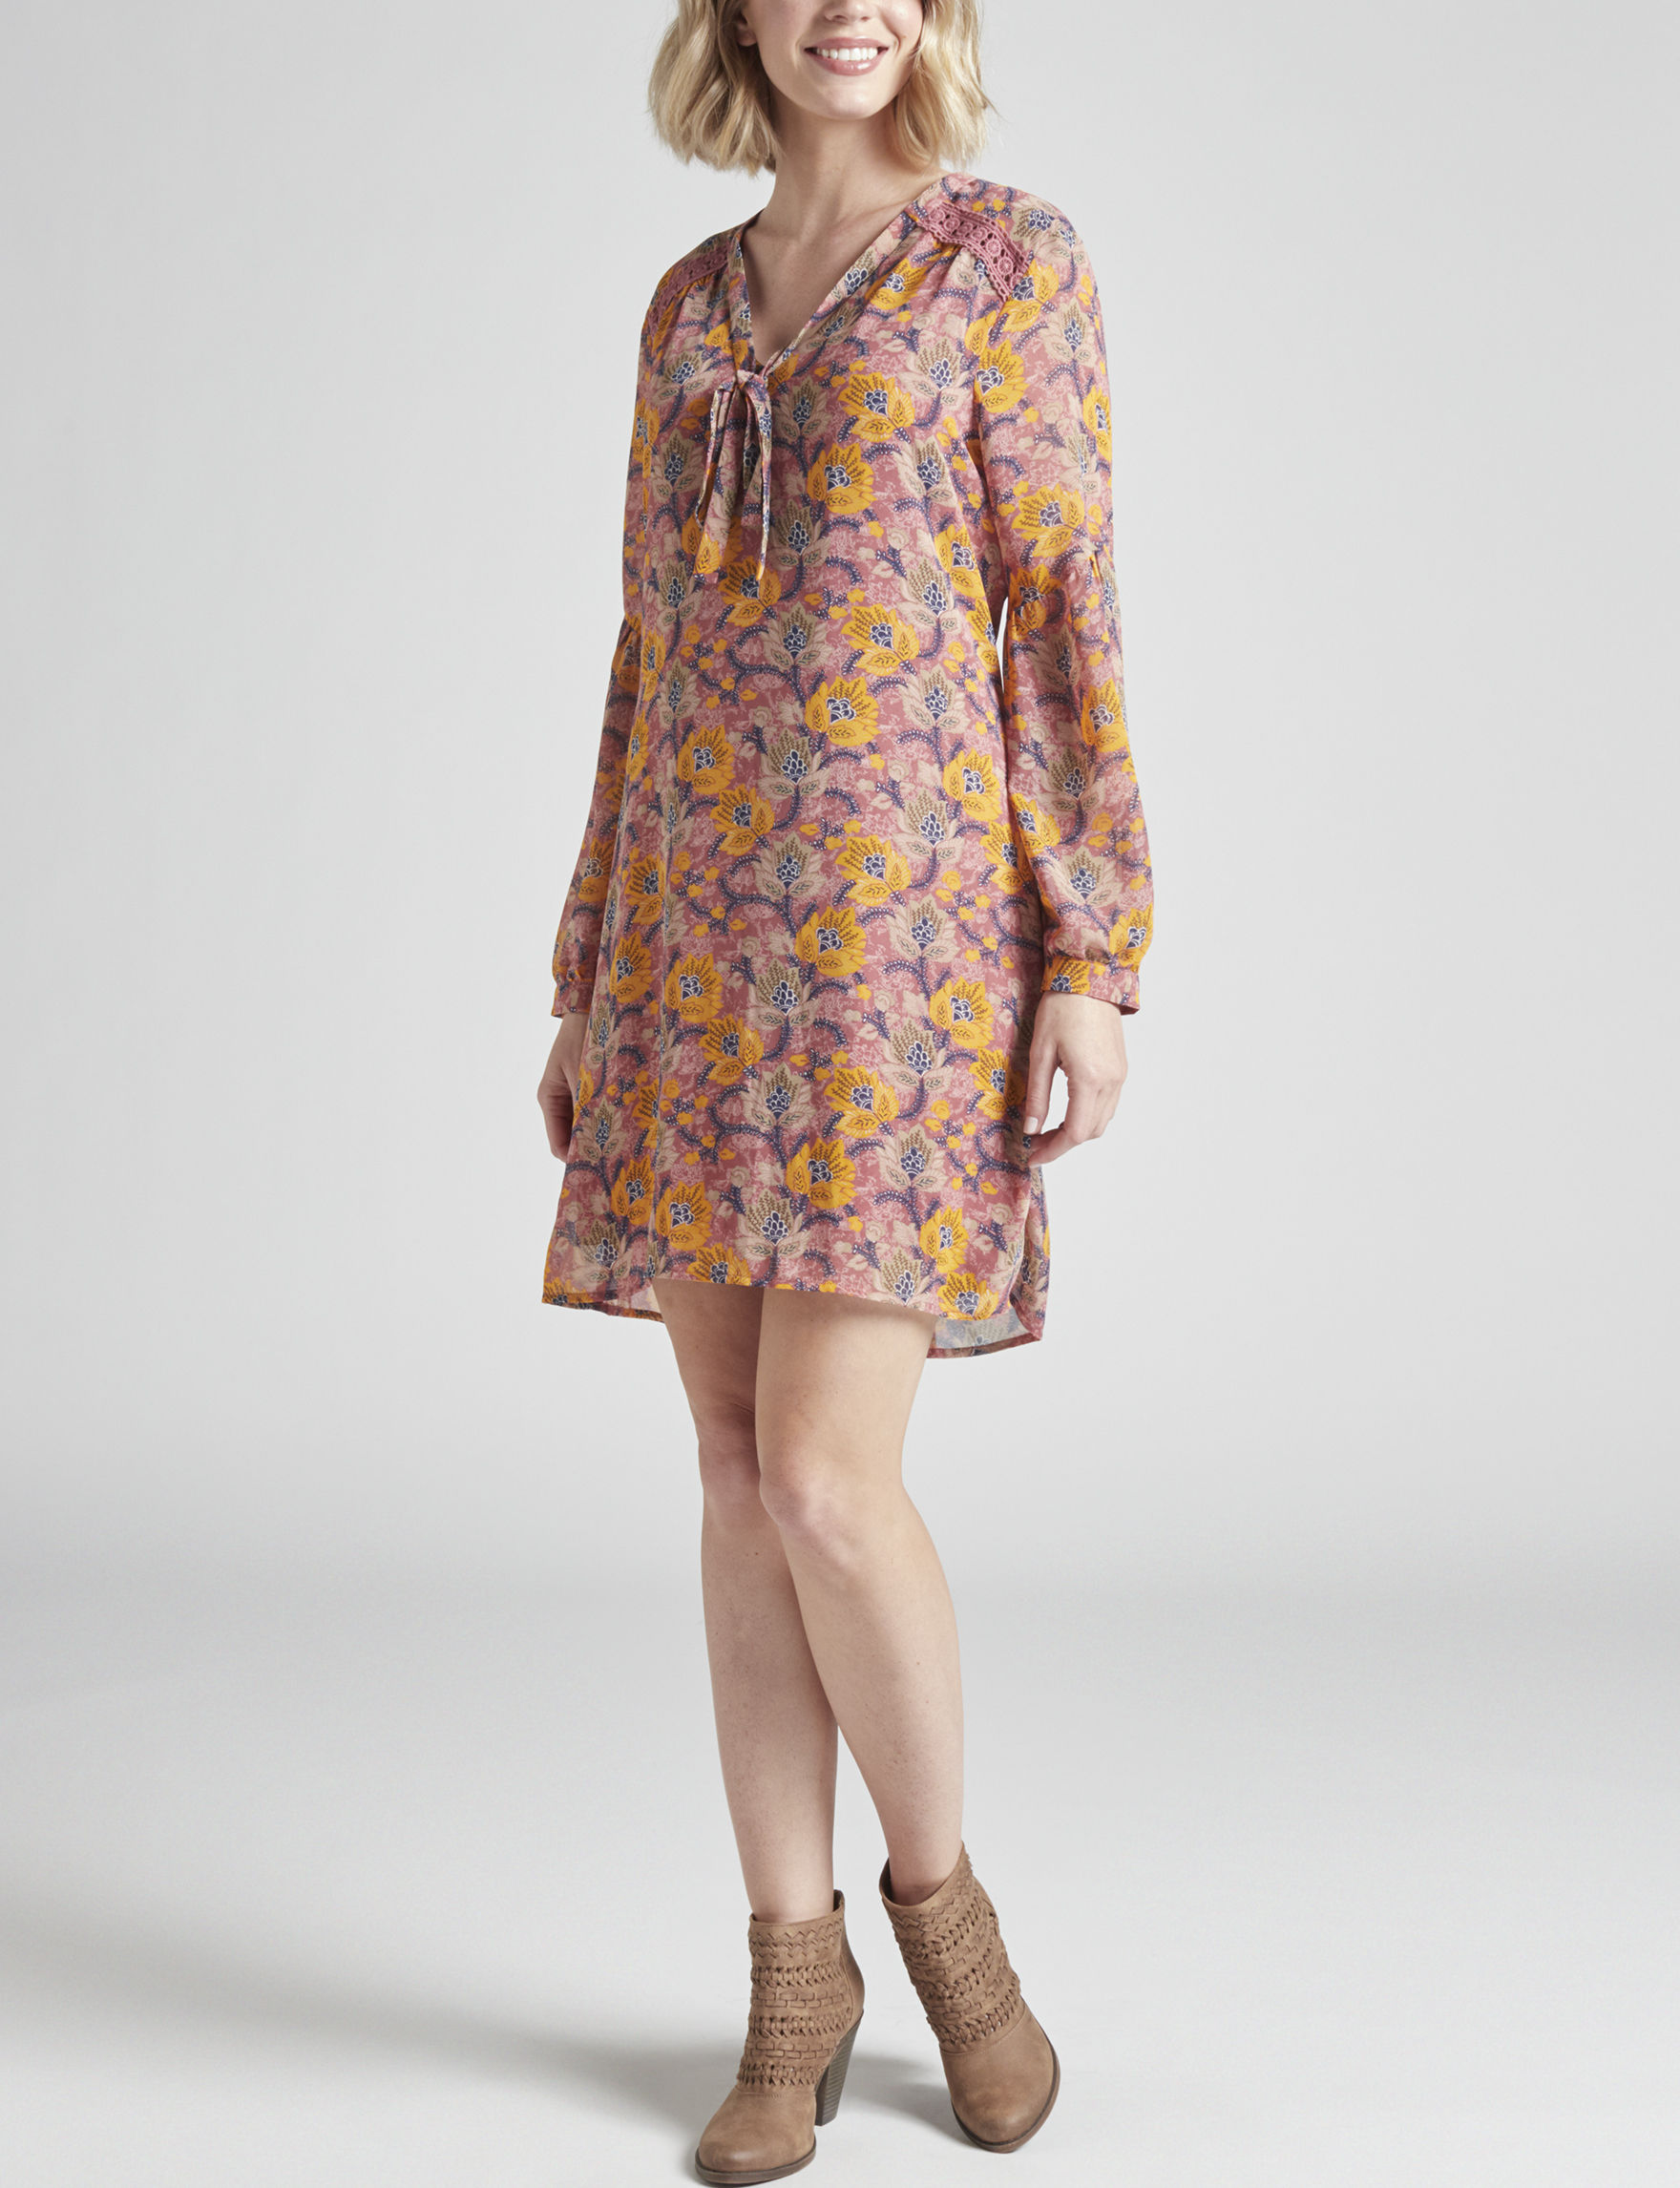 Signature Studio Pink Floral Everyday & Casual Shift Dresses